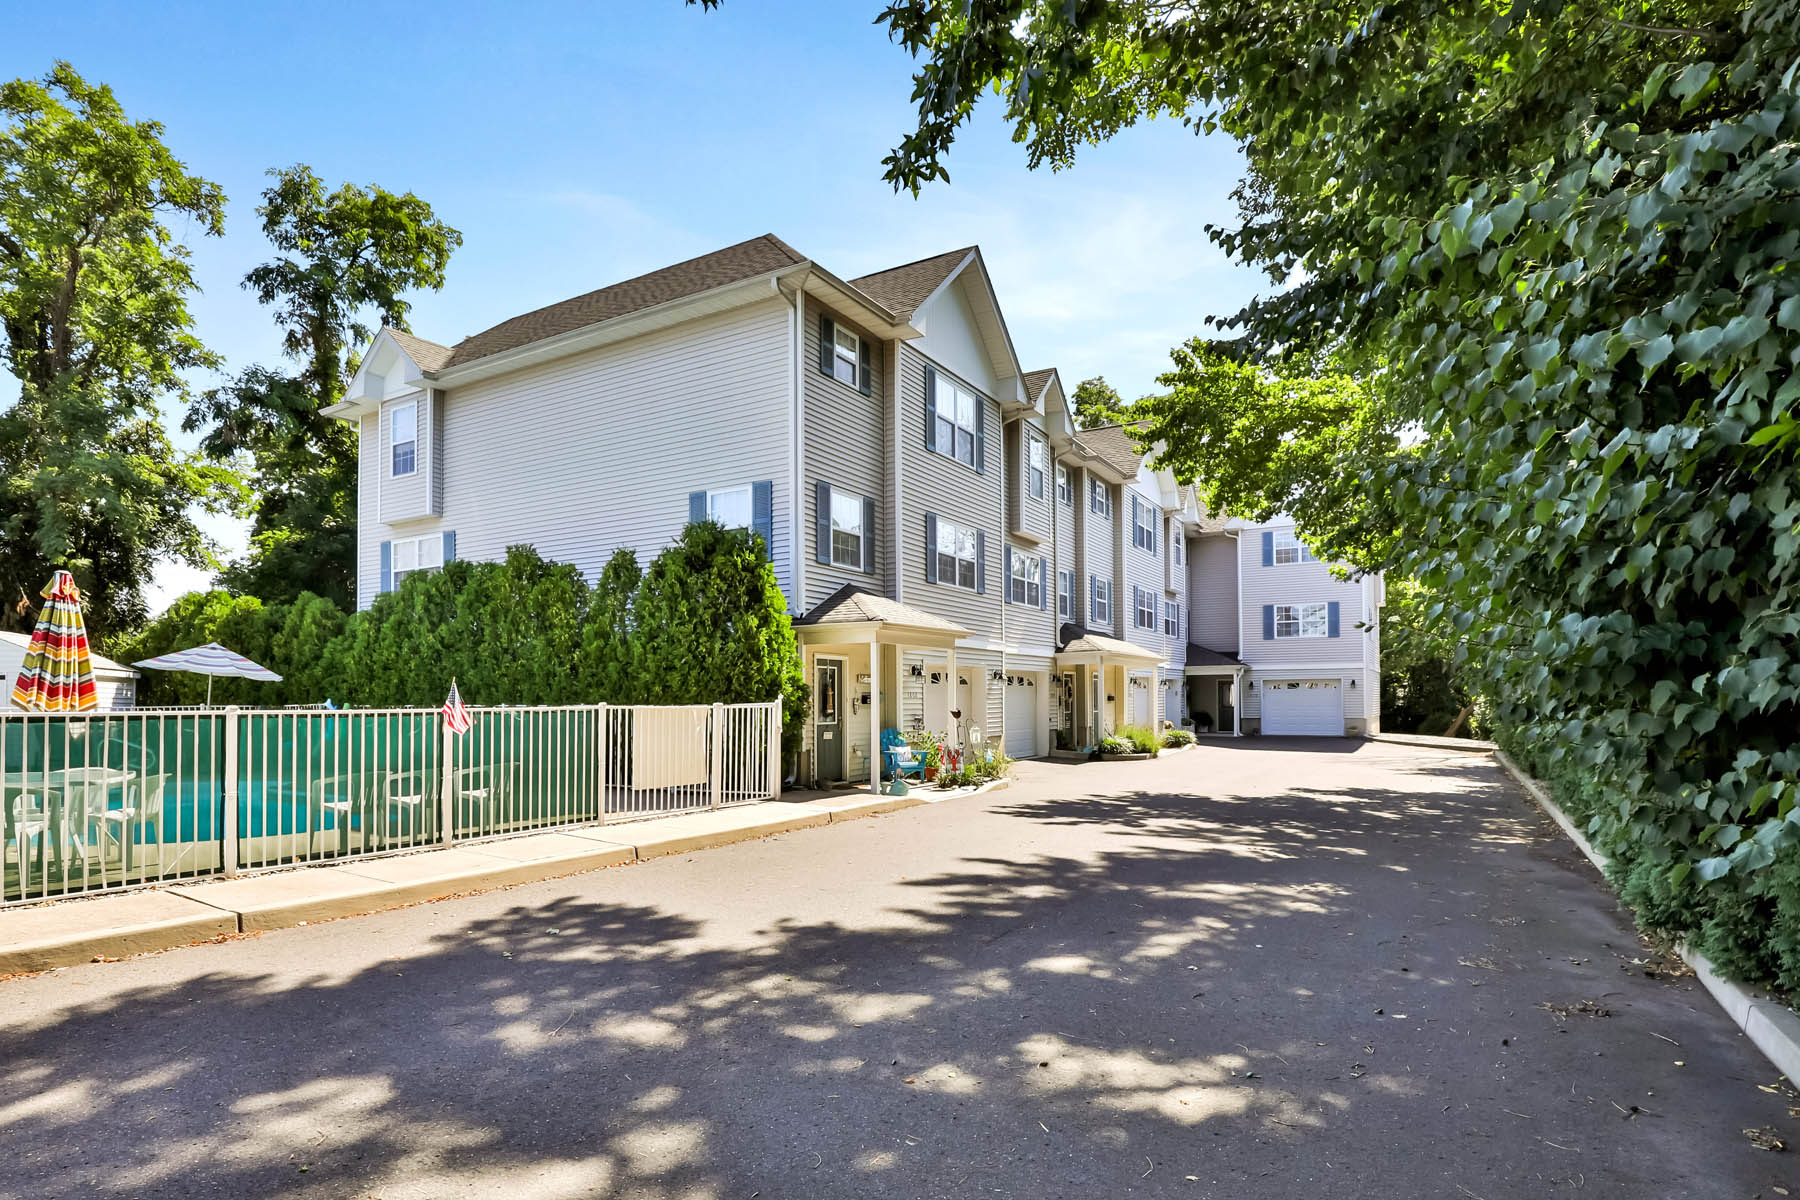 Condominiums for Sale at Beautiful Luxury Townhouse With Ingound Pool 1206 Charleston Street Point Pleasant Beach, New Jersey 08742 United States